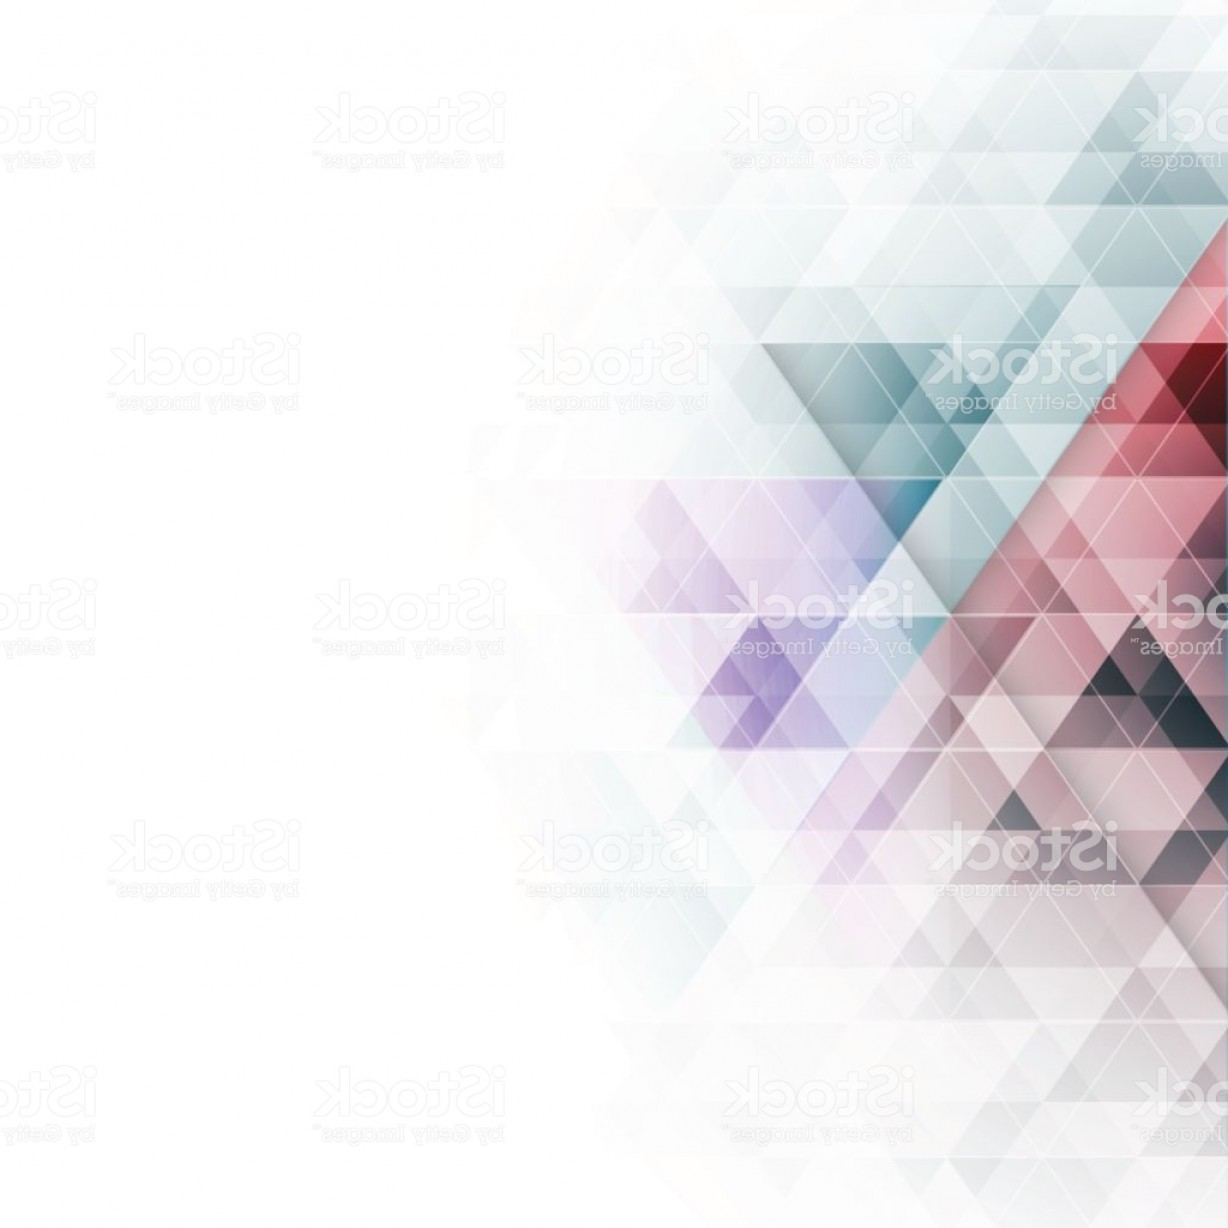 Backgroung Vector: Abstract Colorful Triangles Geometric Background Vector Illustration Gm